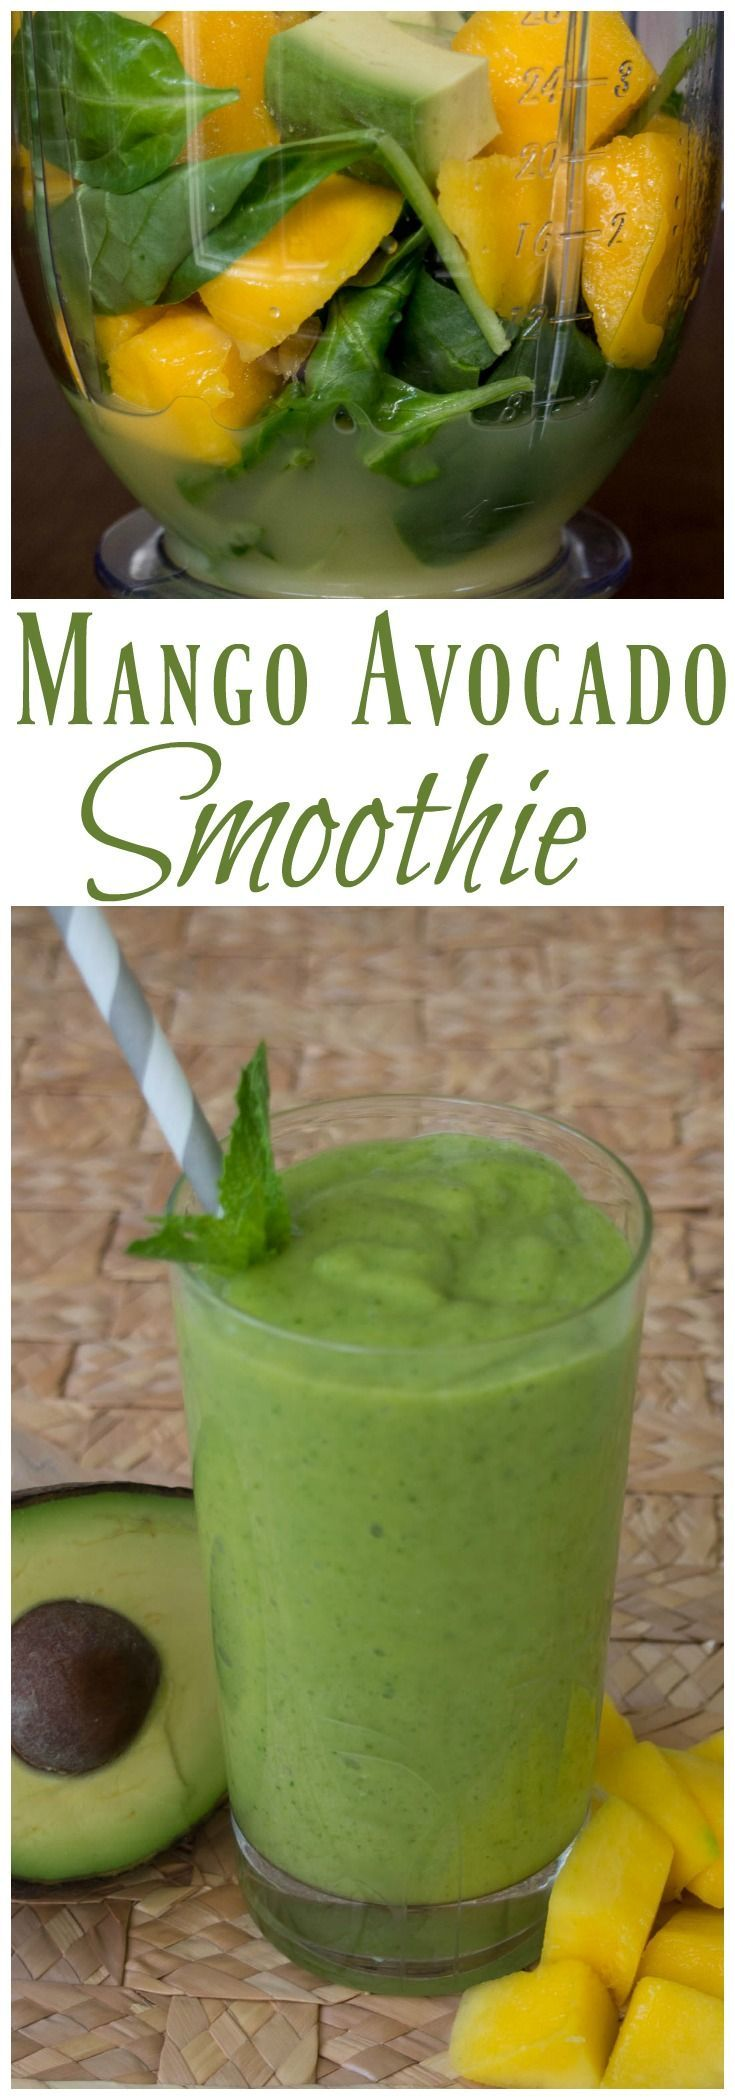 Mango Avocado Smoothie | Dairy Free Smoothie | Easy 5 Ingredient Smoothie | Green Smoothie | Healthy Snack | Green Food | St. Patrick's Day Treat